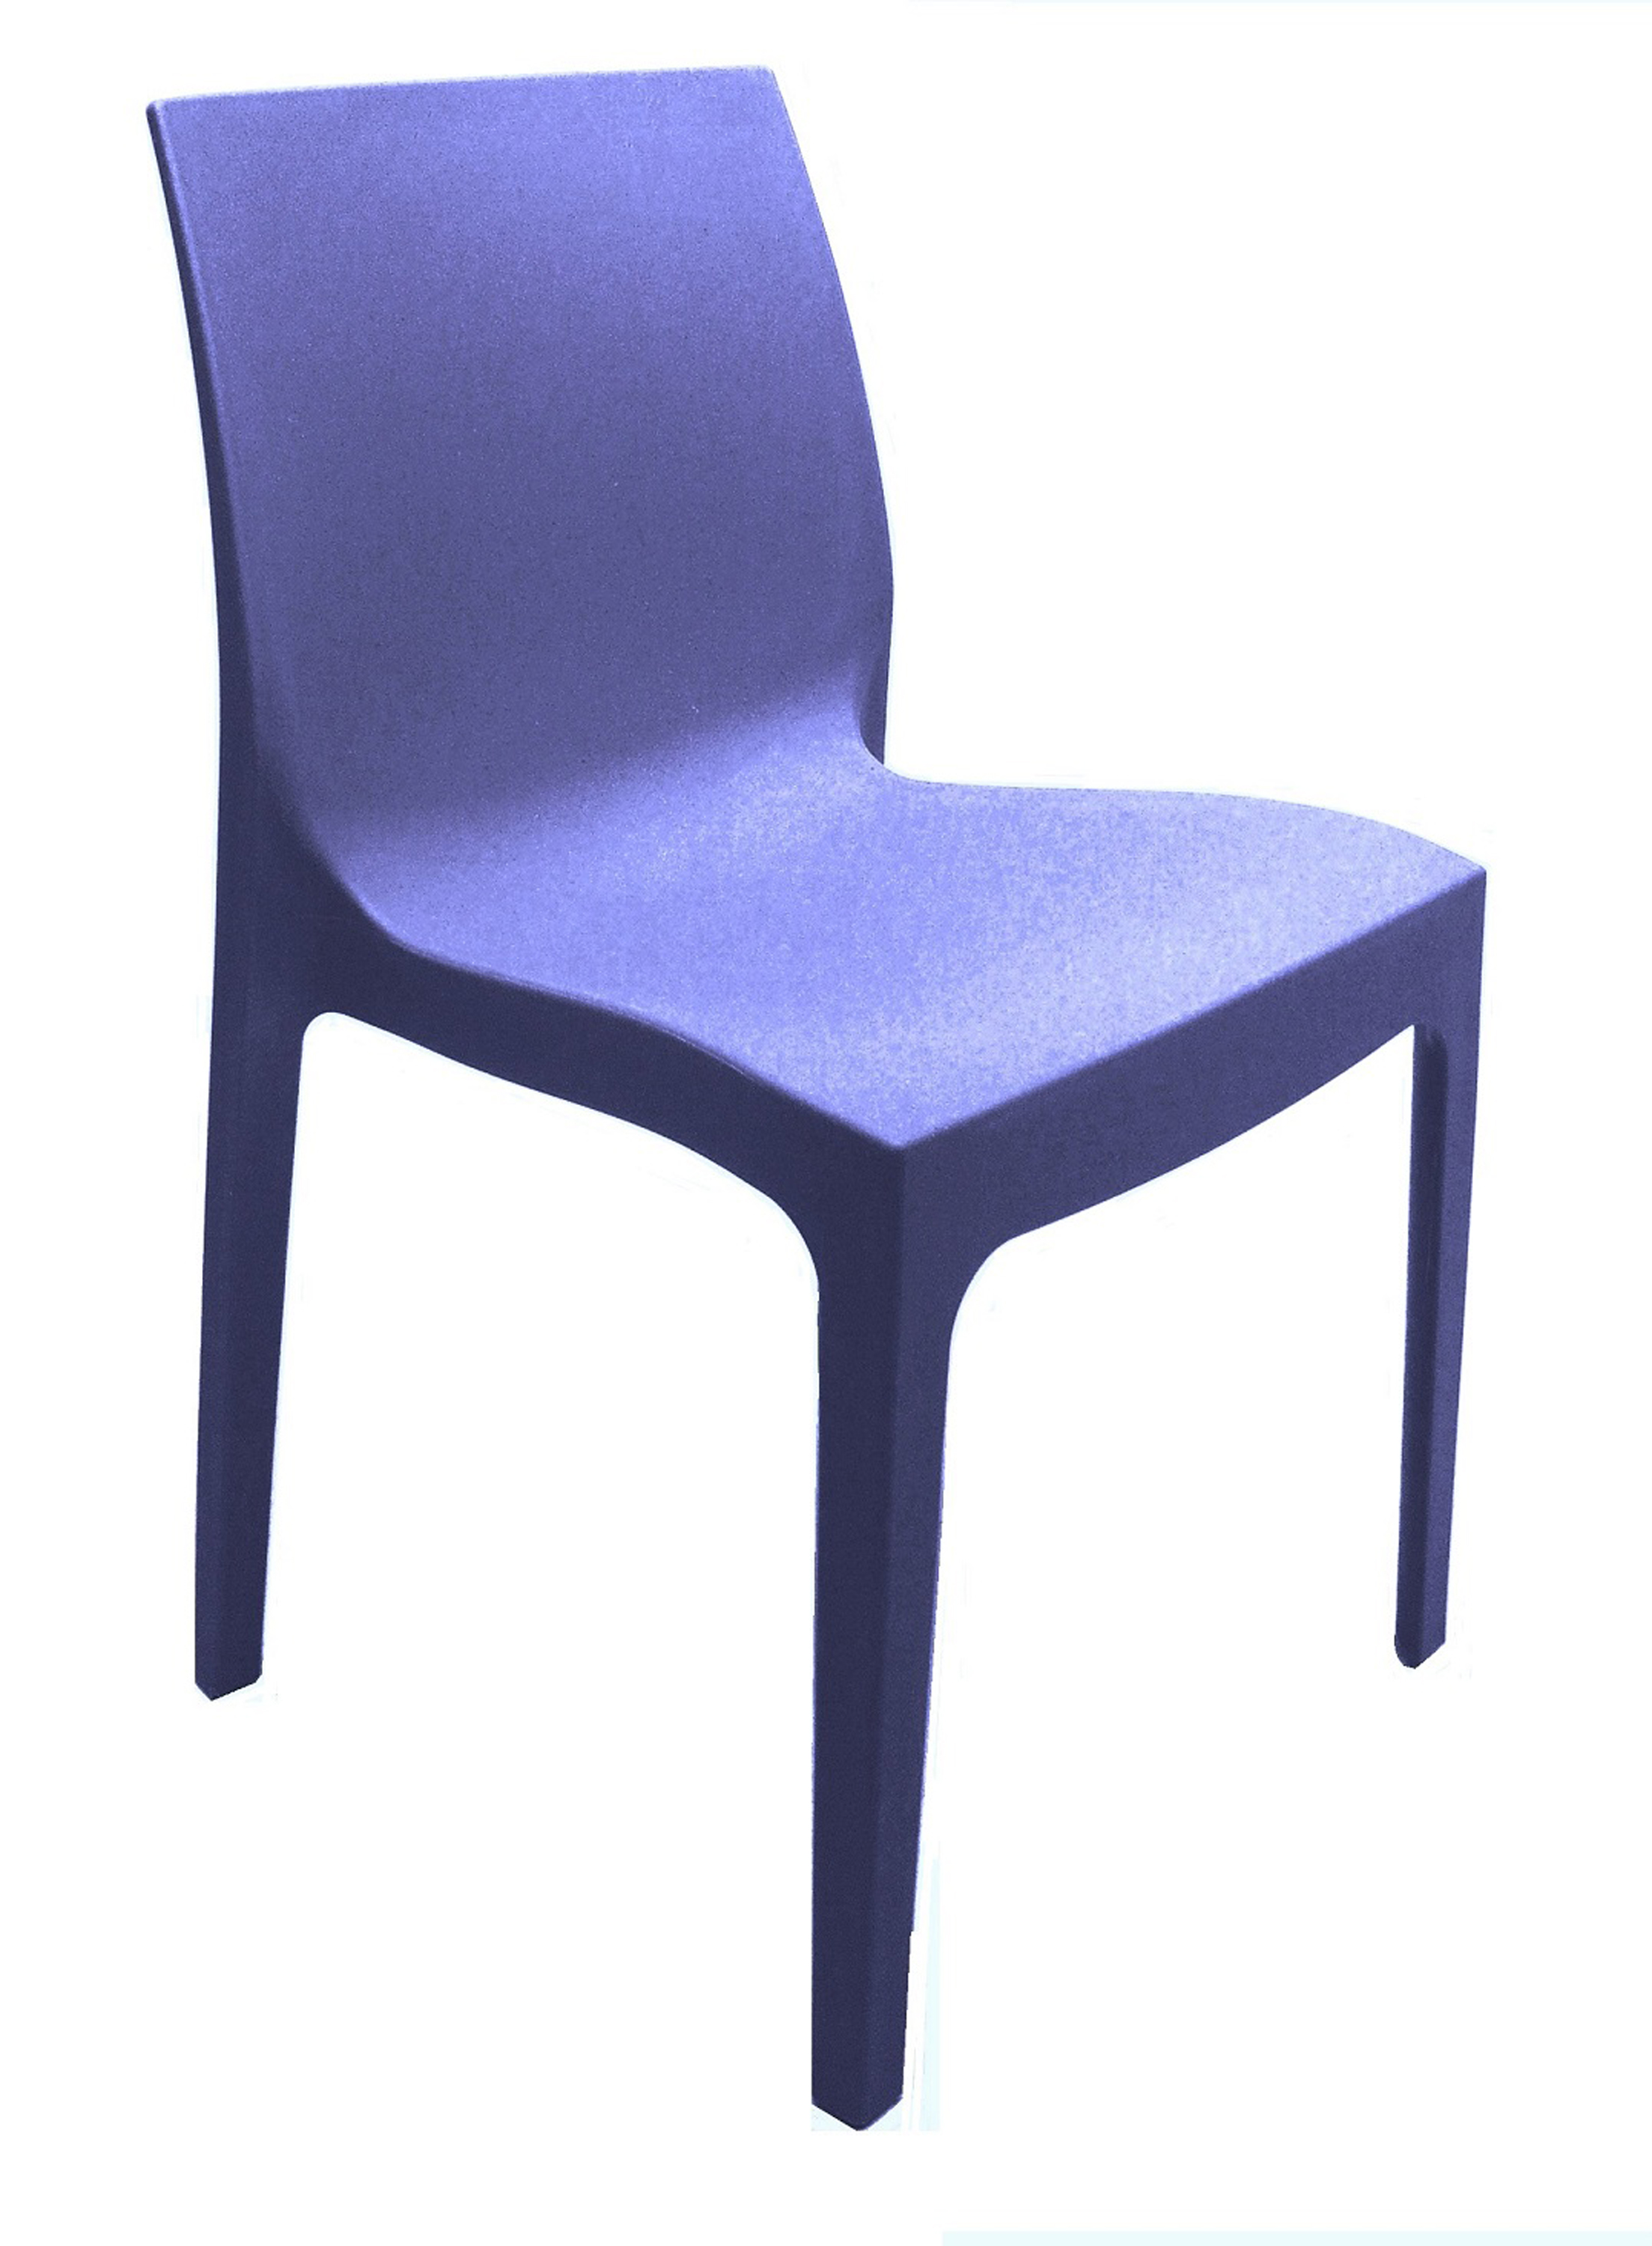 Strata Polypropylene Chair - Blue